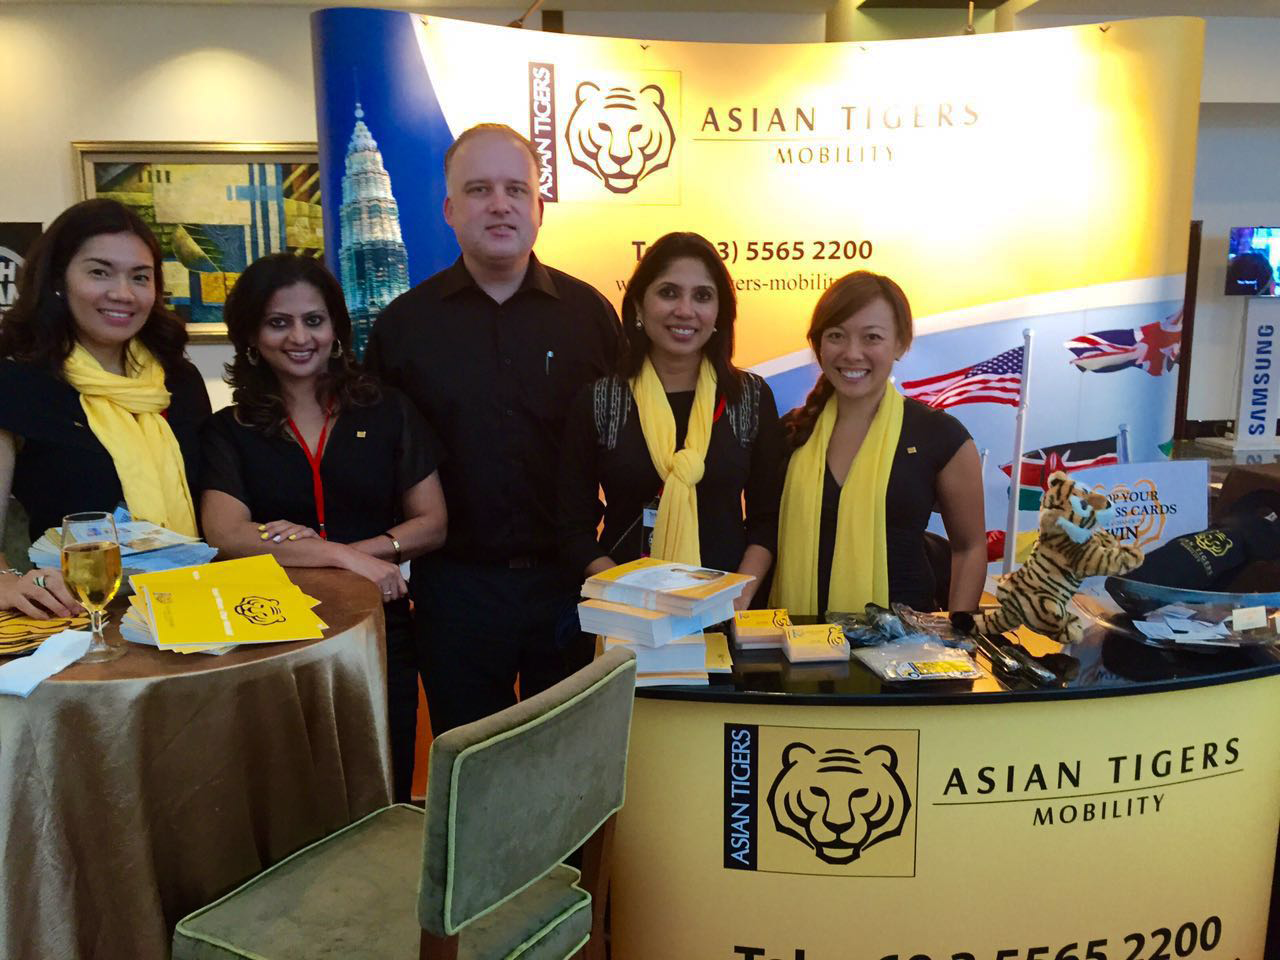 Asian Tigers supports MIGF 2016 | Asian Tigers Mobility